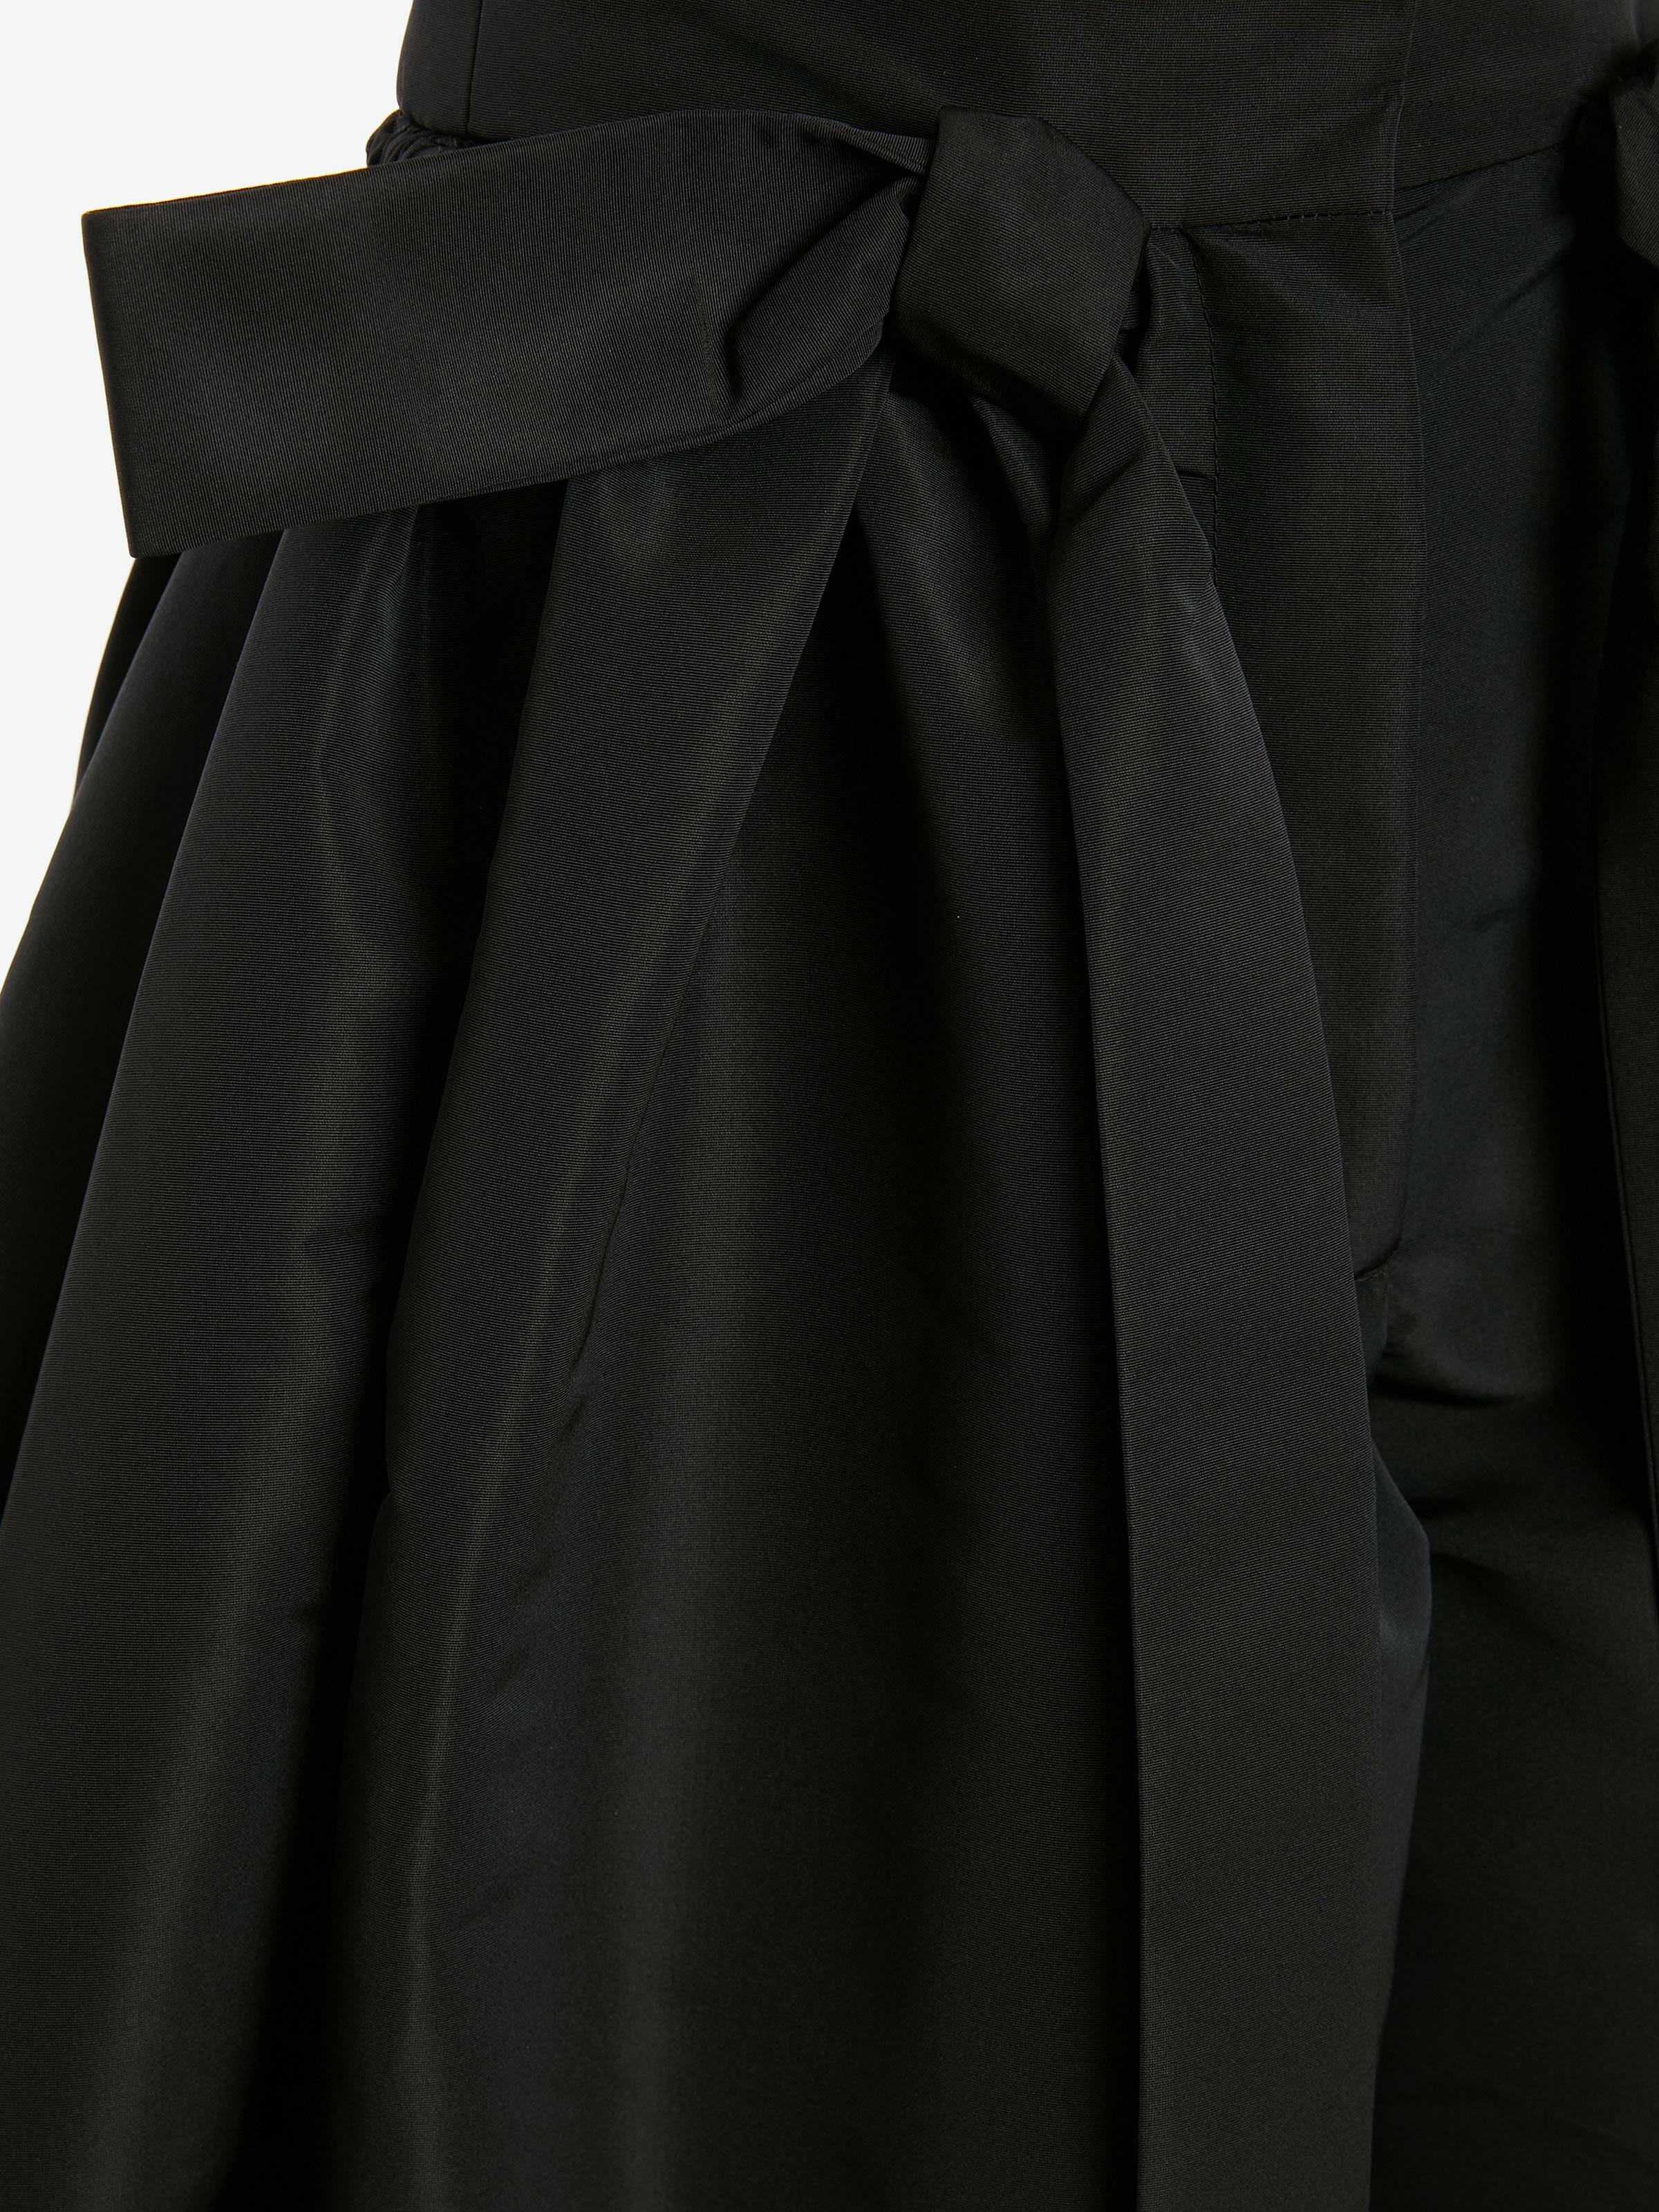 Exploded Ribbon Tie Culottes 4